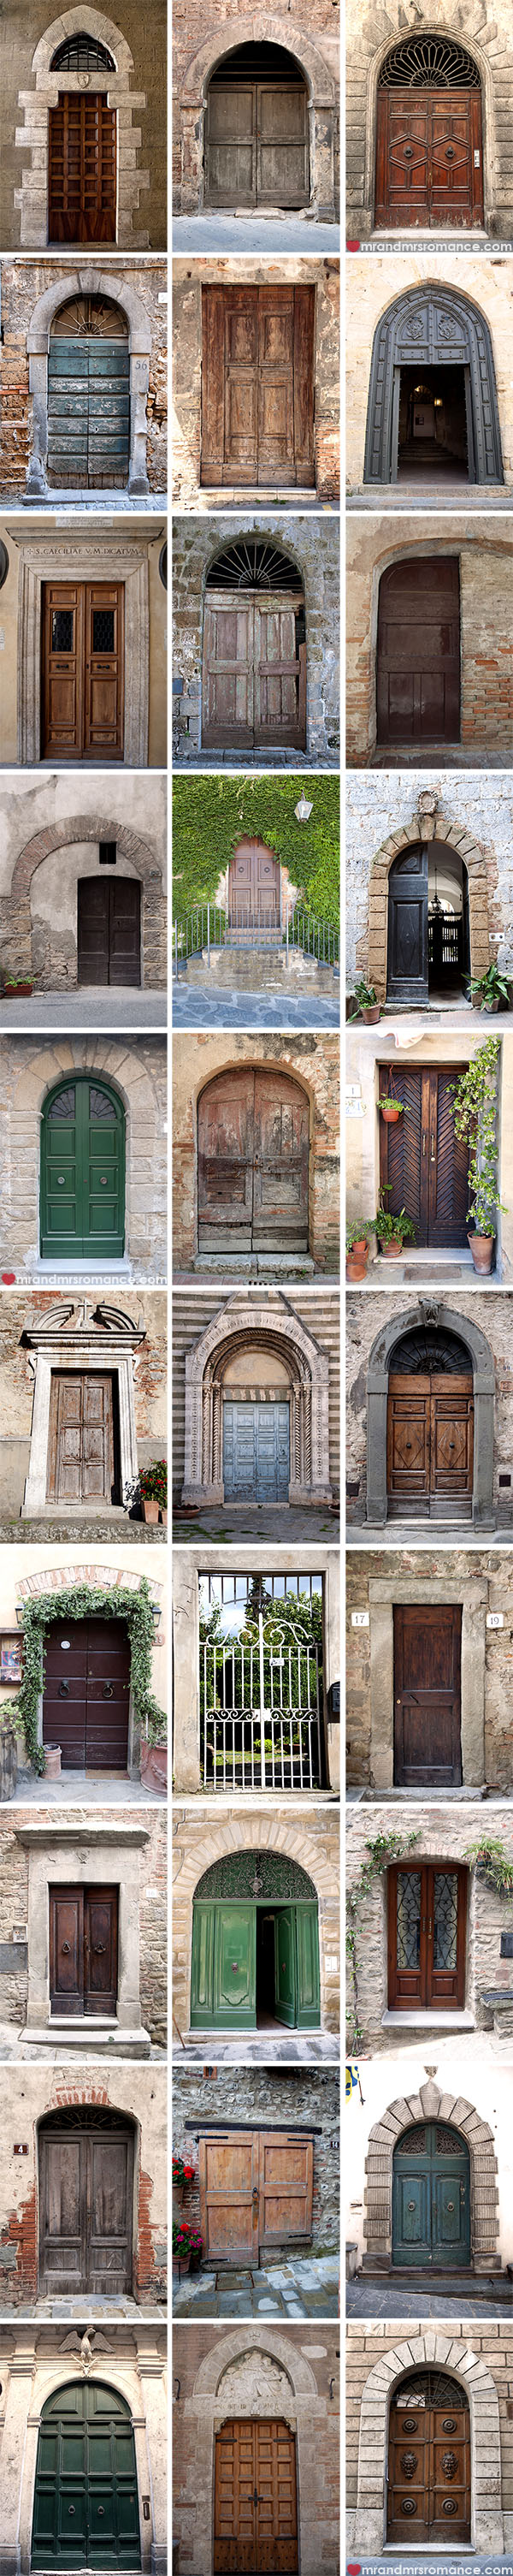 Mr and Mrs Romance - Doors of Tuscany Italy